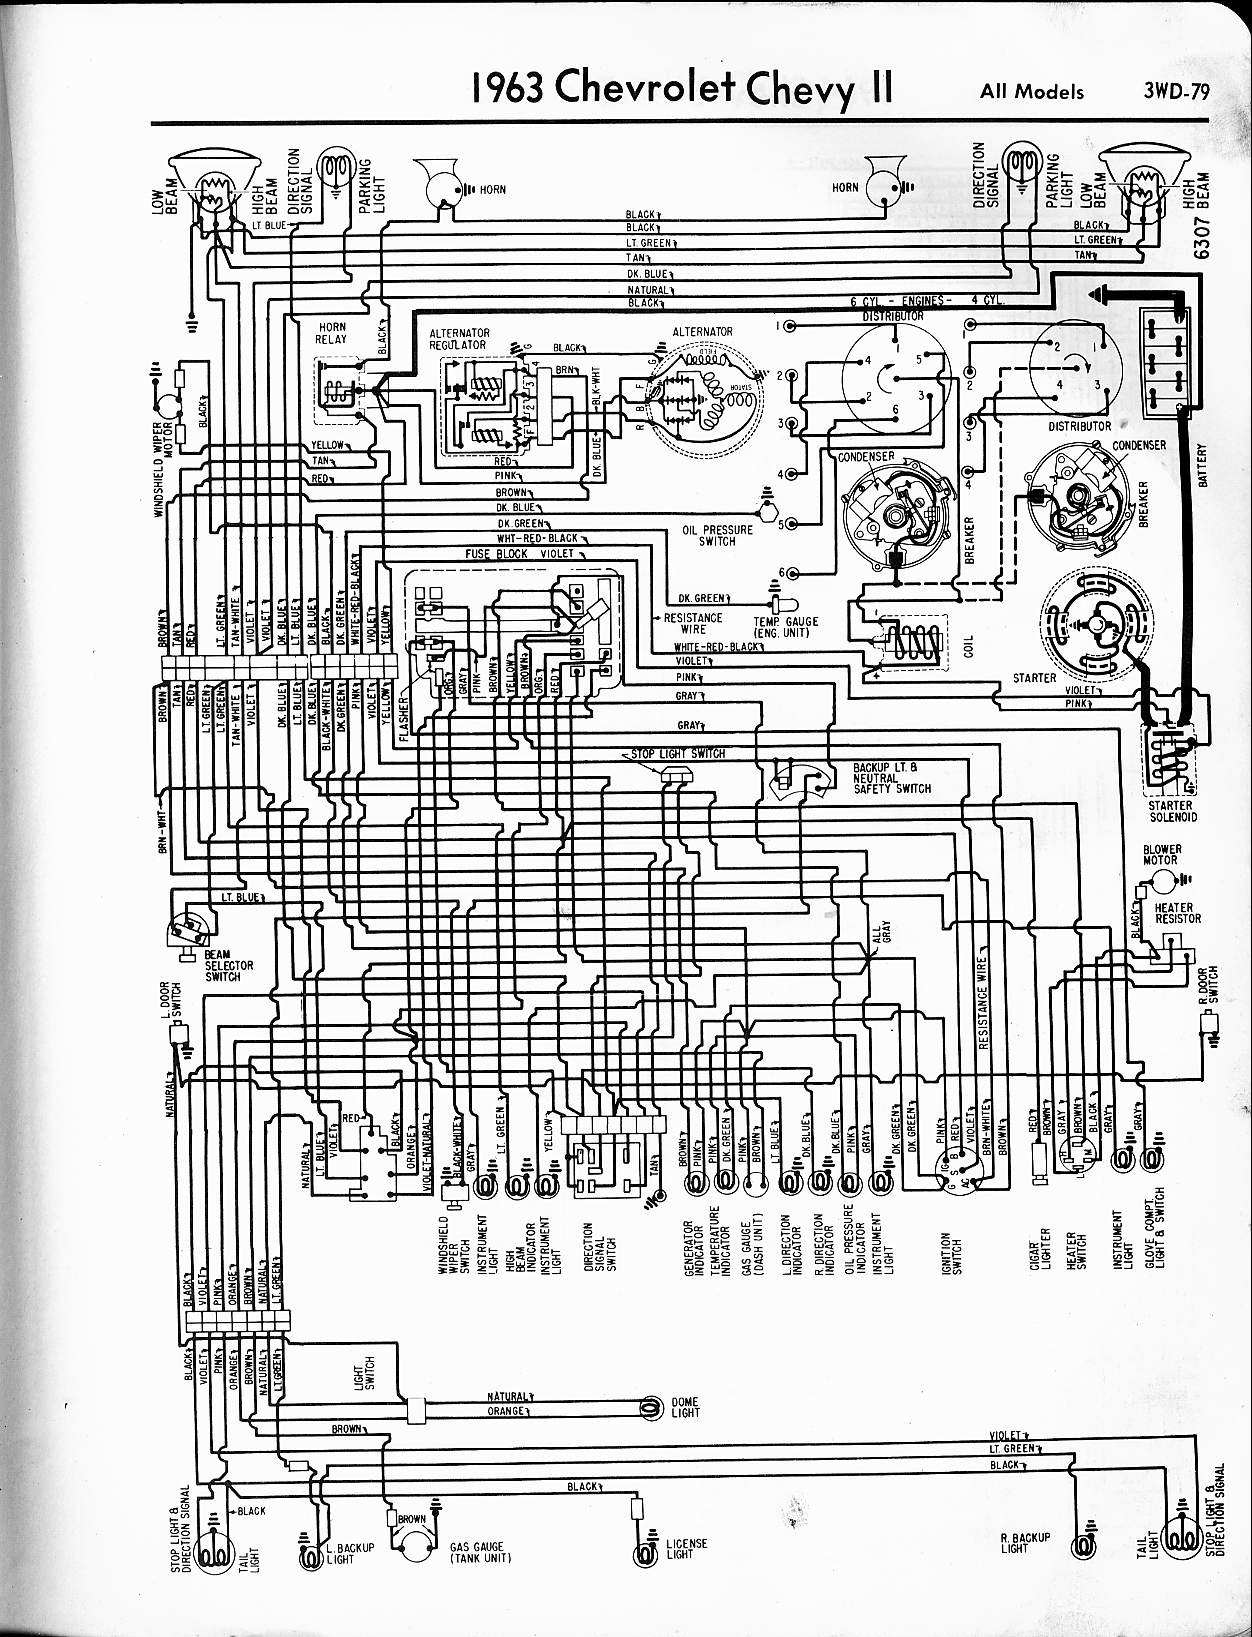 MWireChev63_3WD 079 57 65 chevy wiring diagrams  at soozxer.org